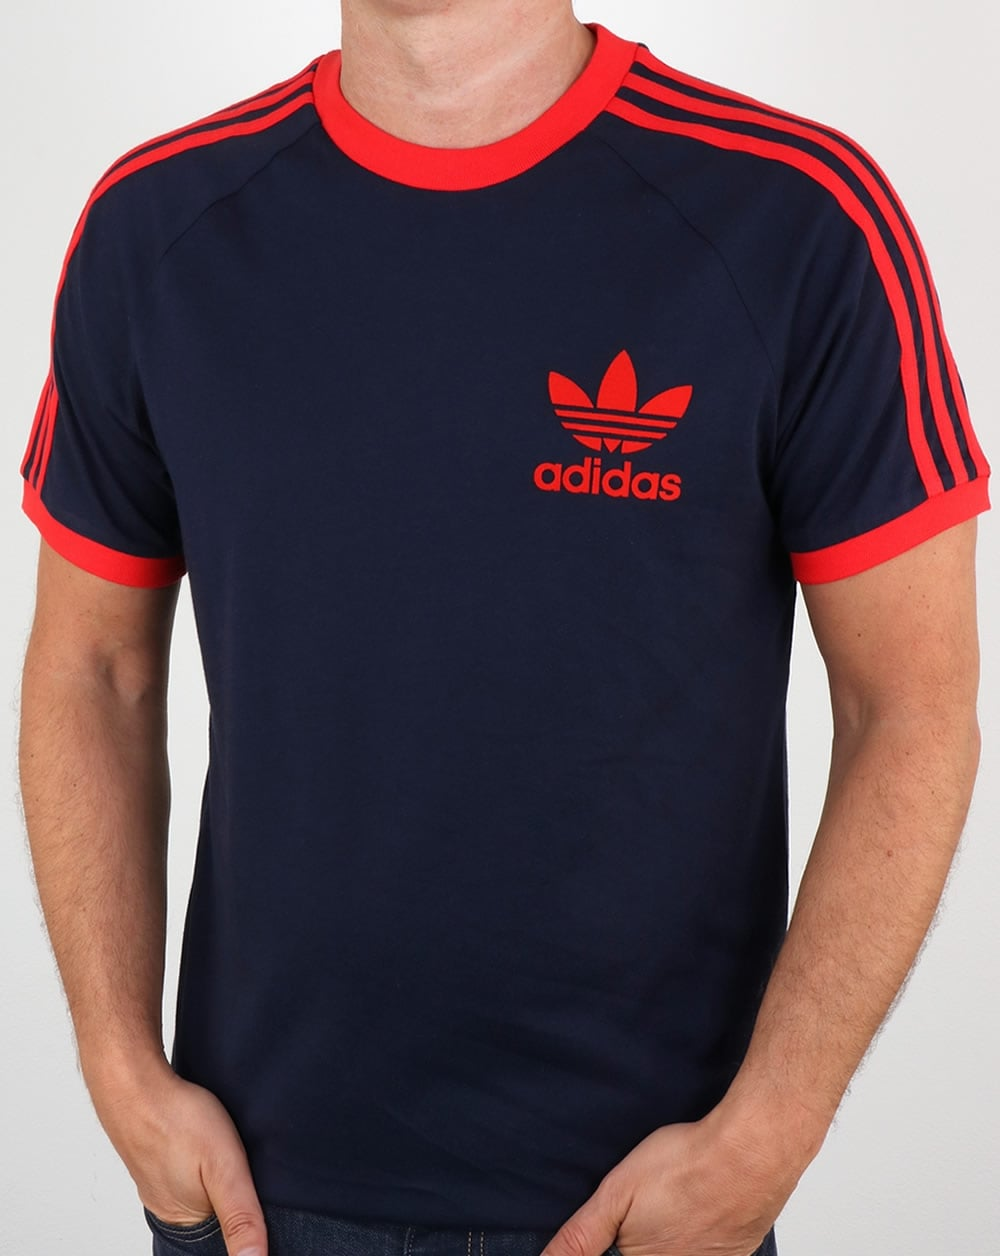 adidas originals retro